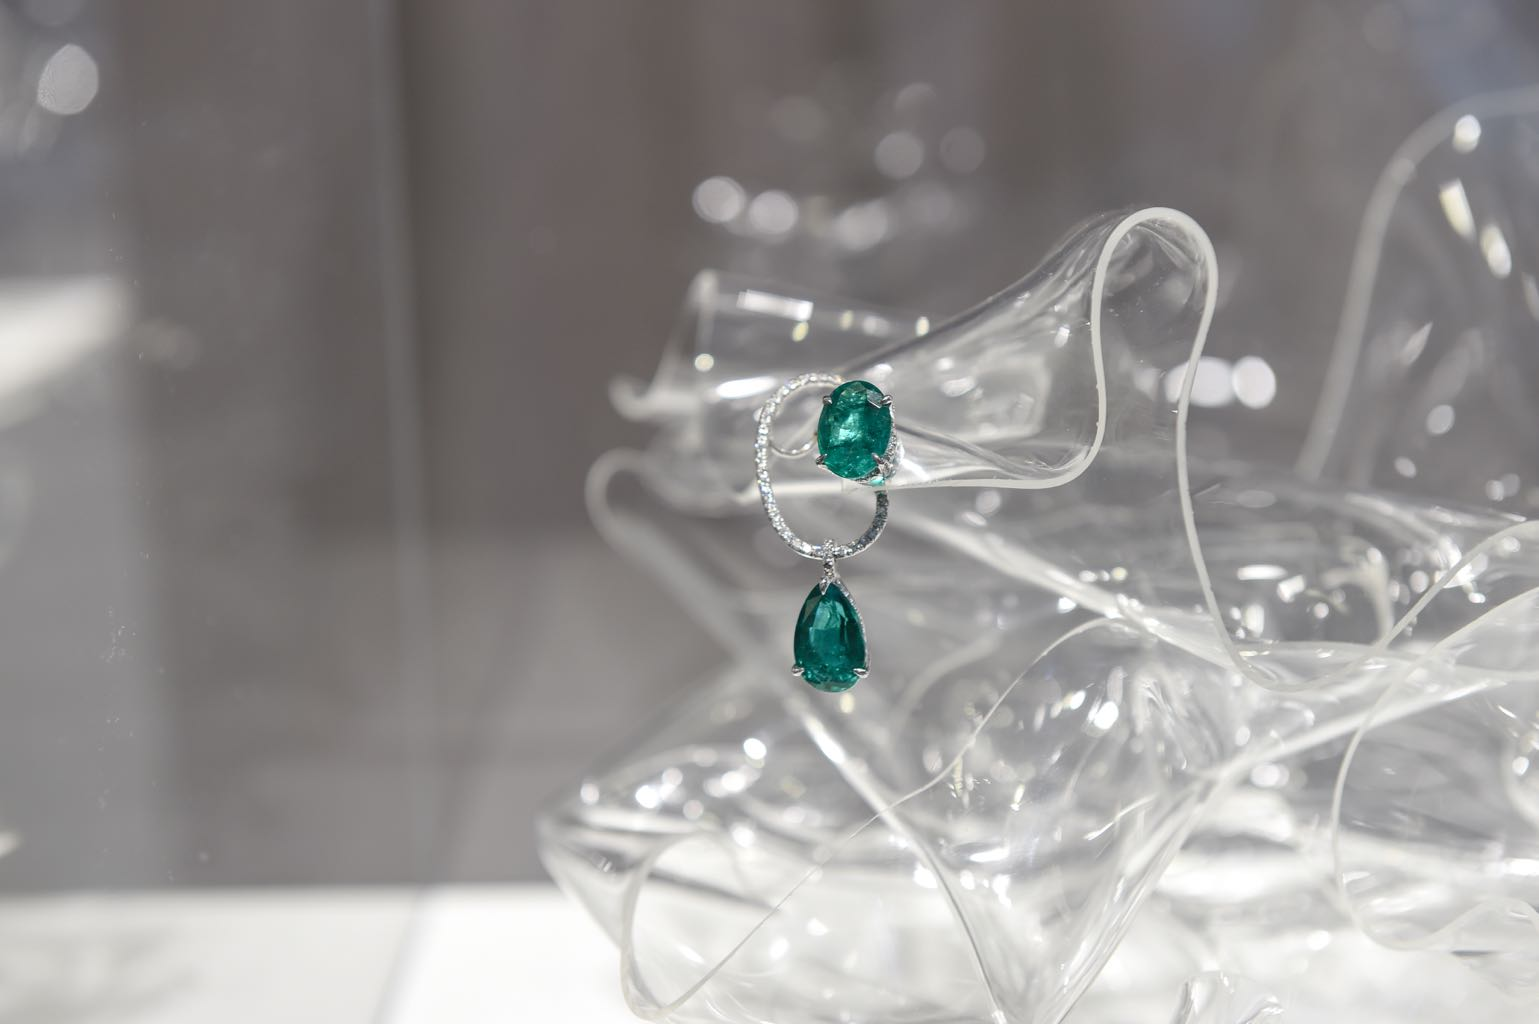 Diamond and emerald Katherine Ear Piece - one of a pair - on display at Jewels Now : Ana Khouri at Phillips New York Photo BFA